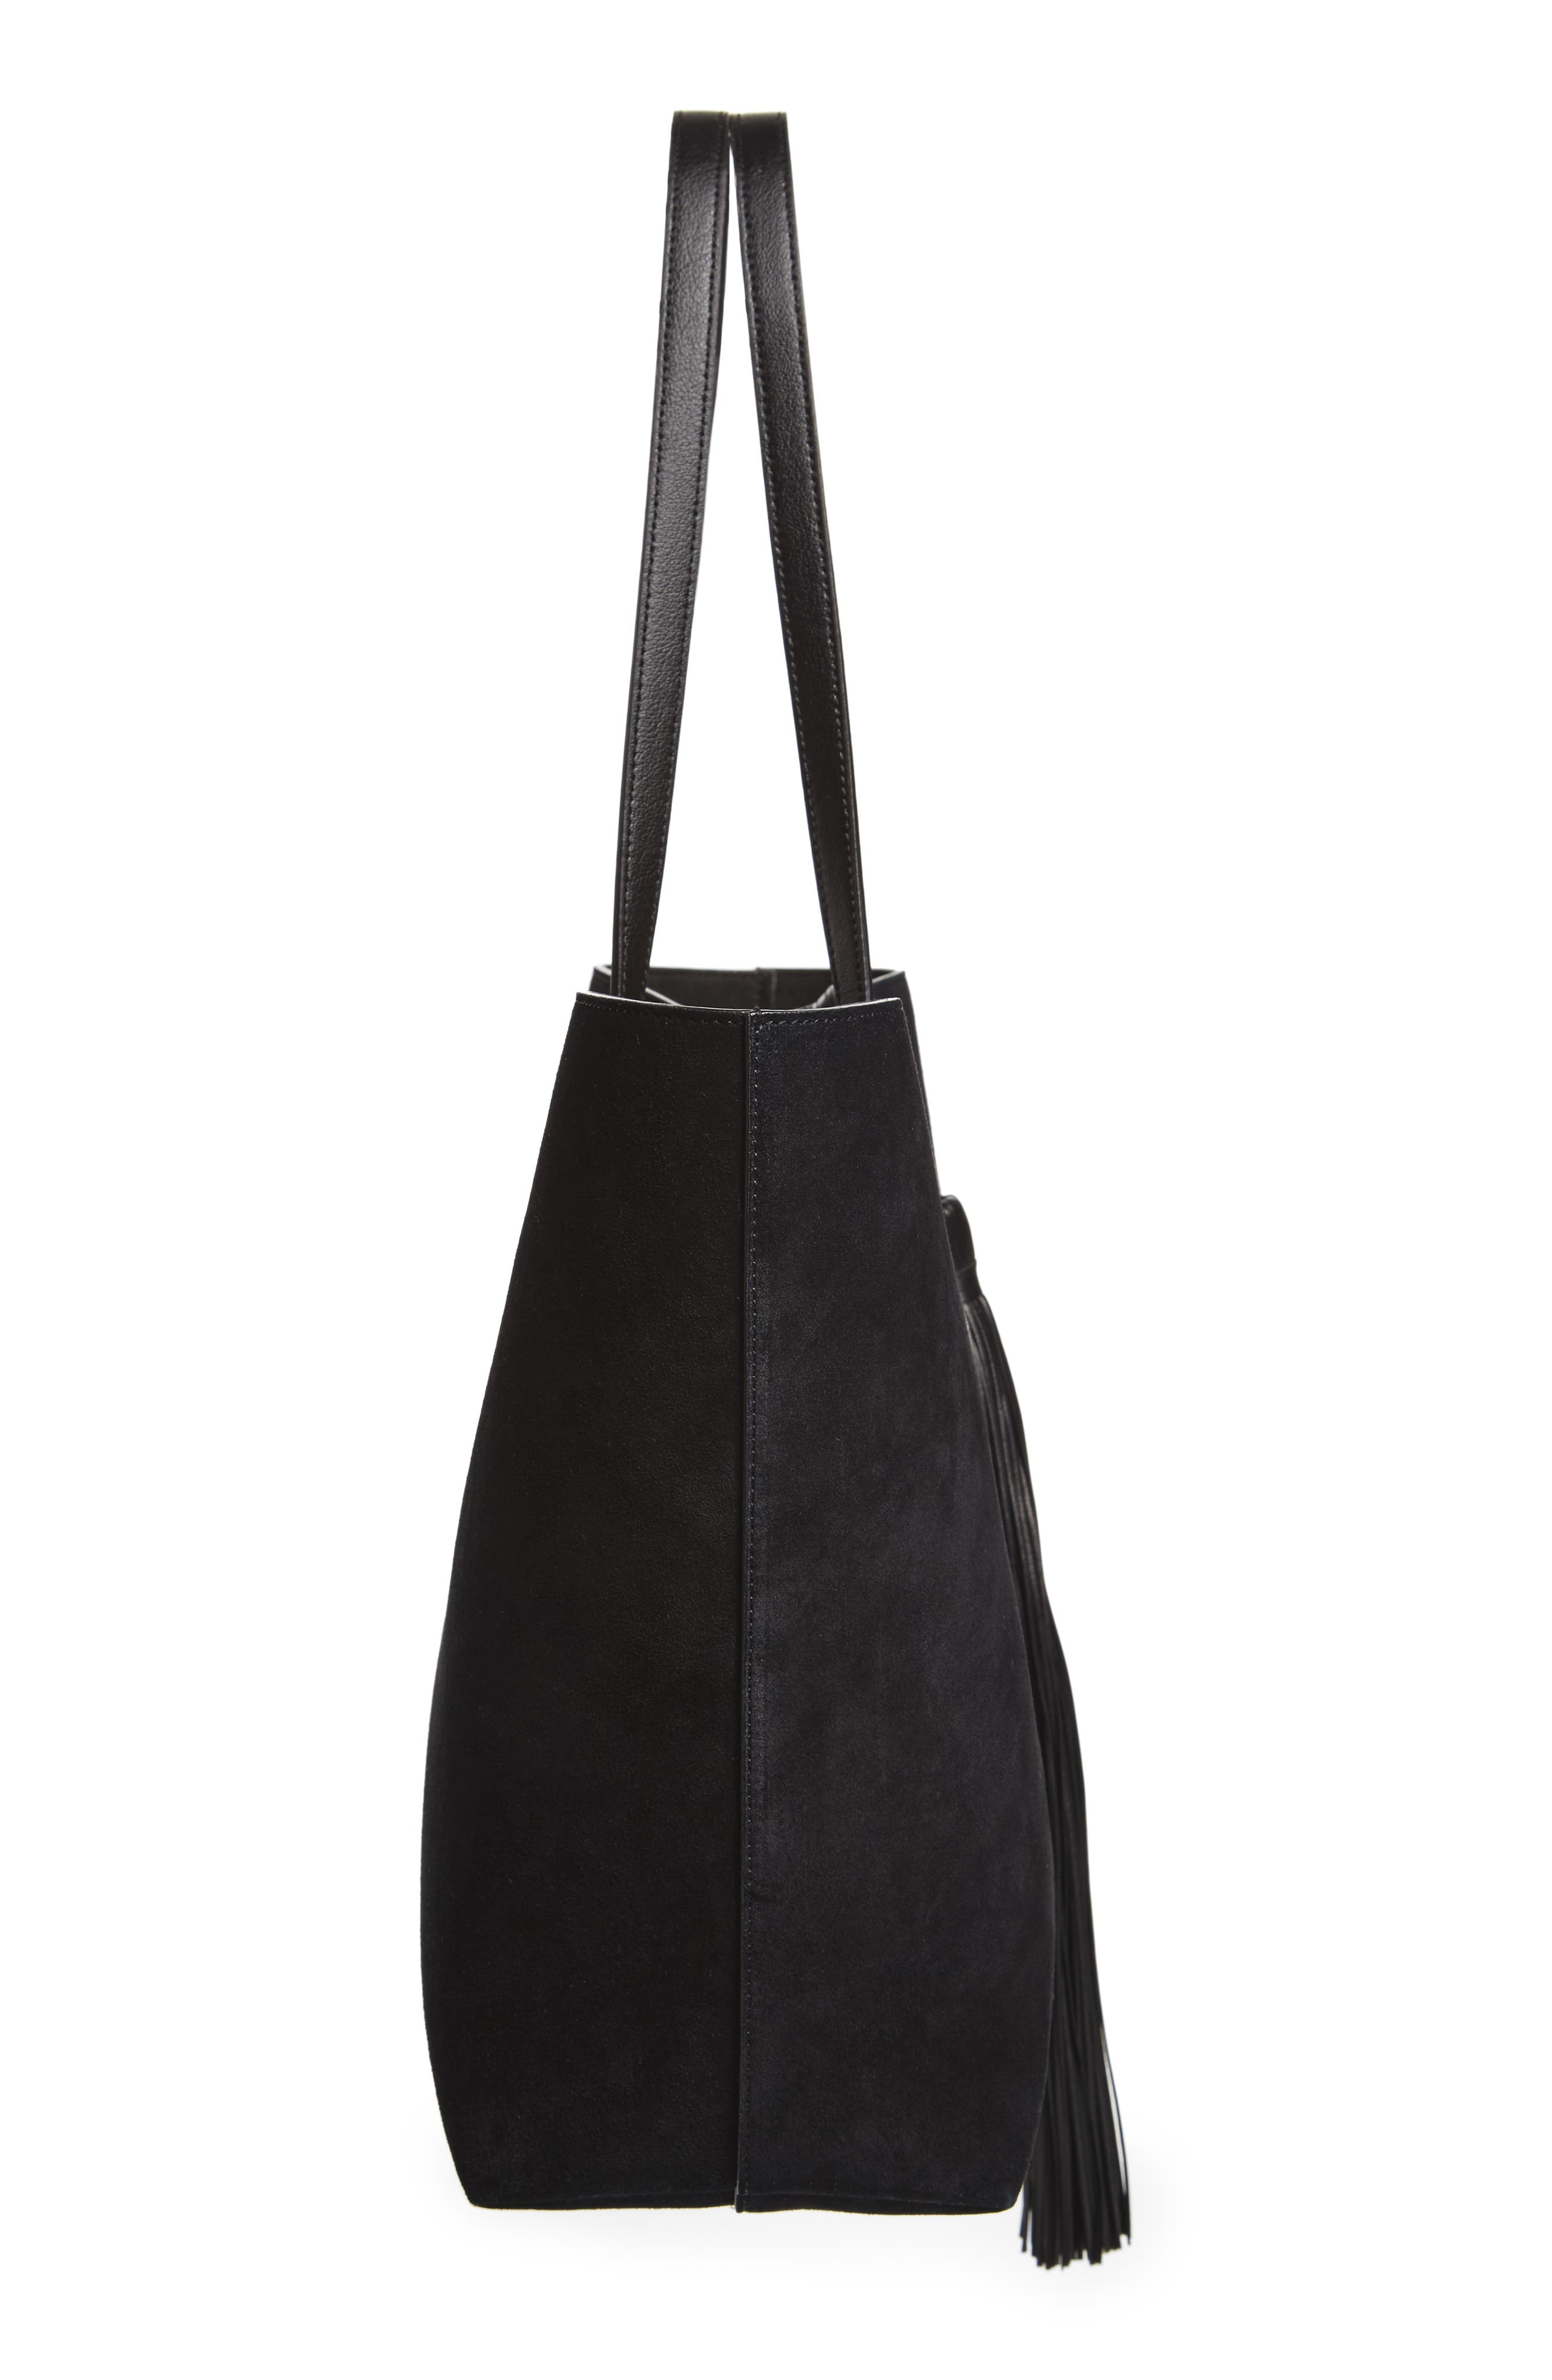 East/West Suede Tote,                             Alternate thumbnail 5, color,                             001